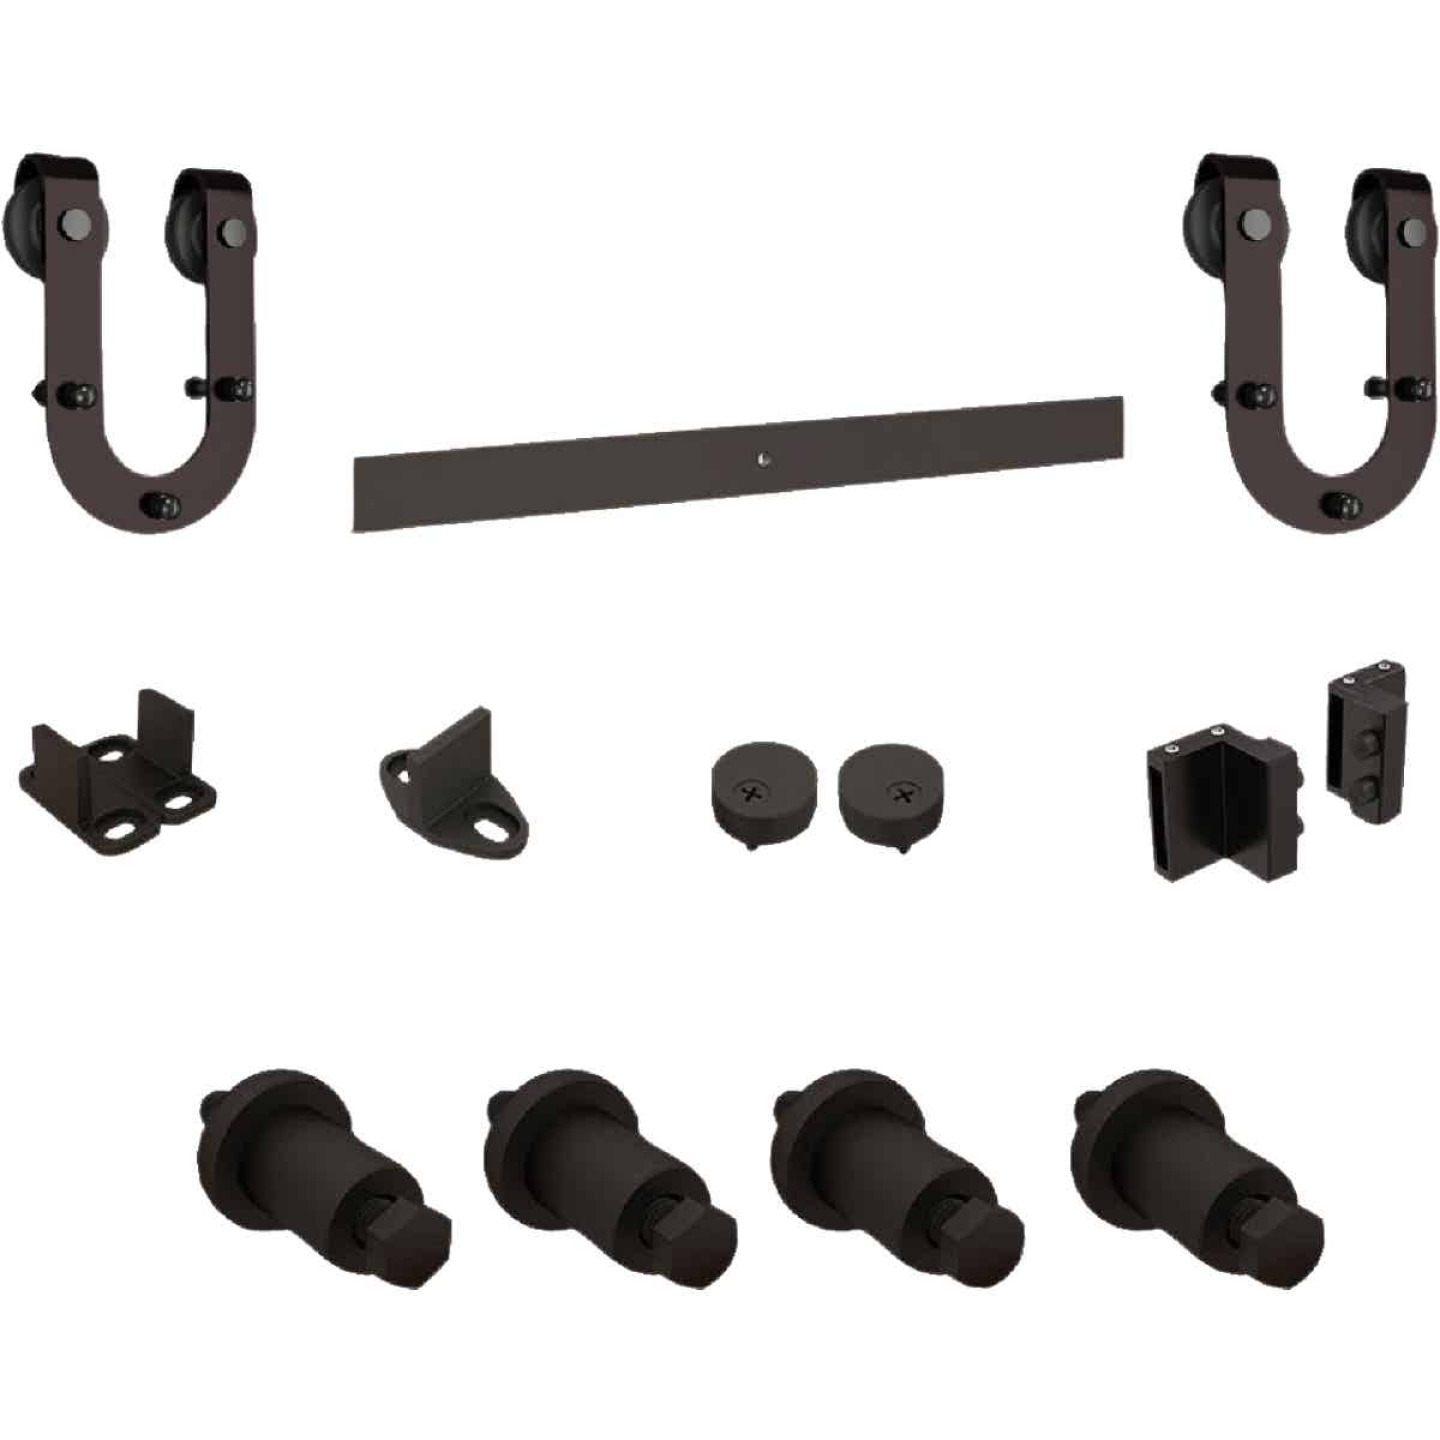 National Oil Rubbed Bronze Steel Up to 200 Lb. Barn Door Hardware Kit Image 1